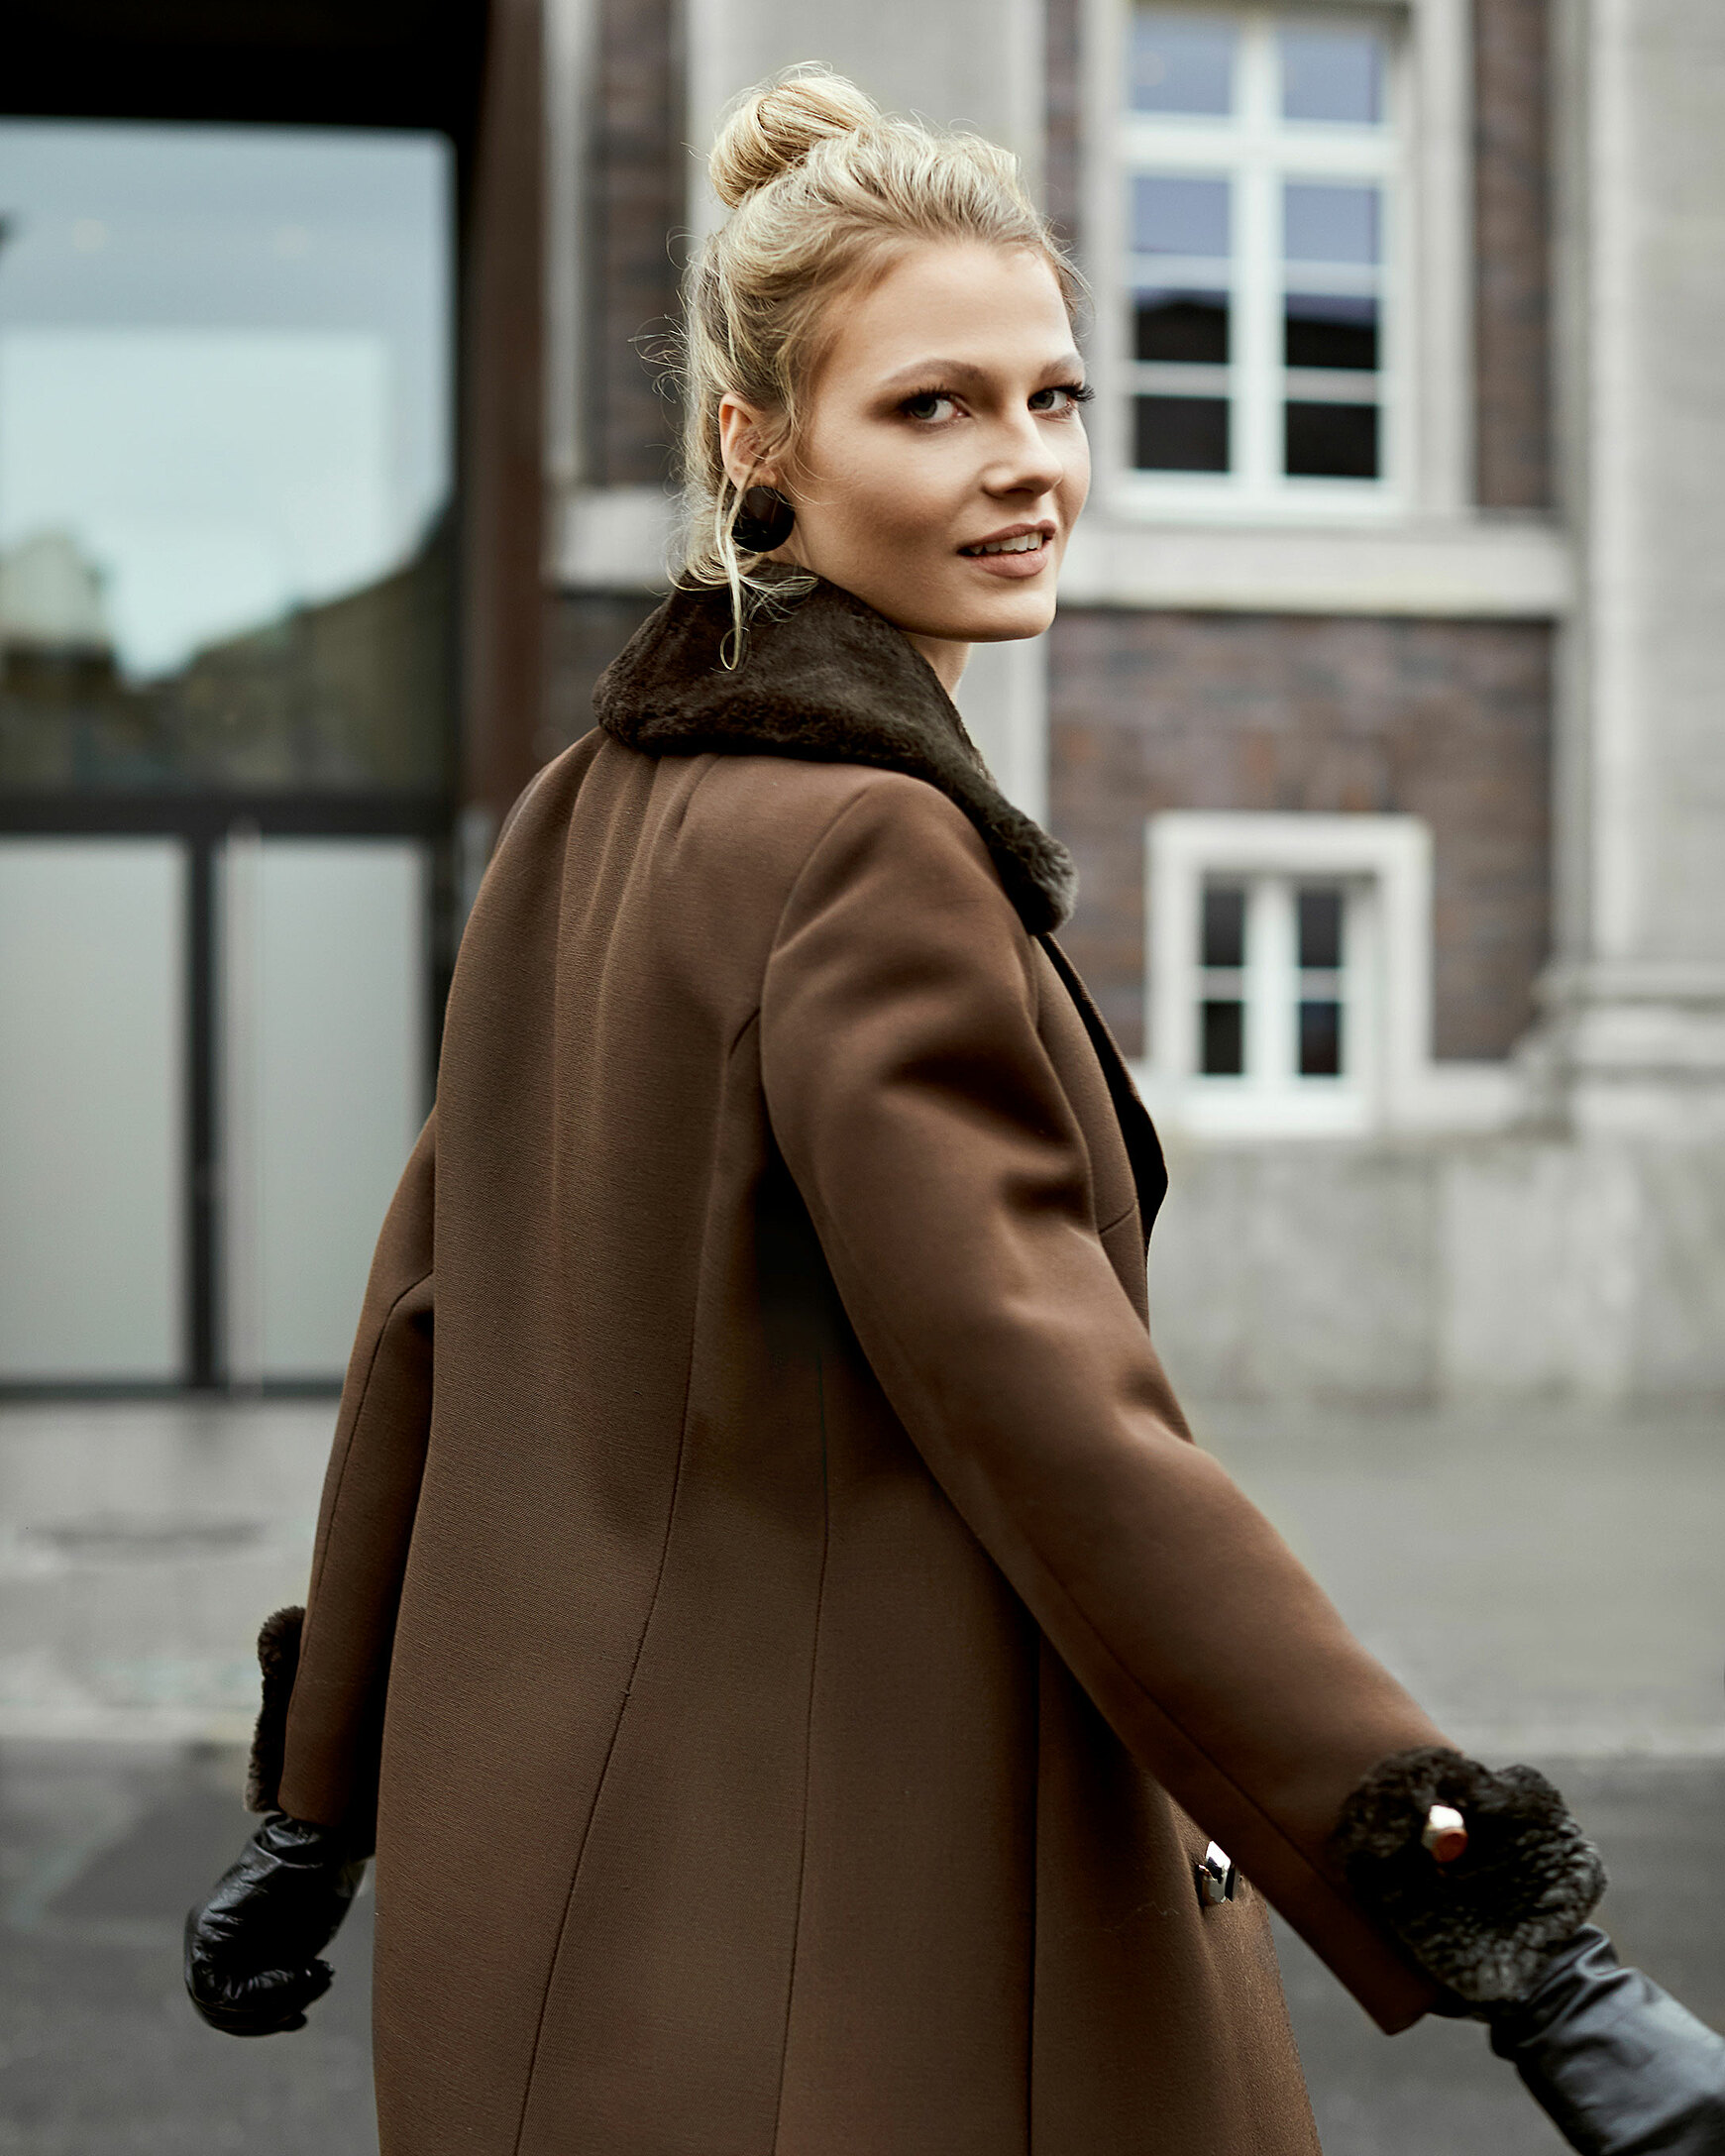 A blonde model in a brown winter coat with fake fur applications and a pair of leather gloves in front of a building